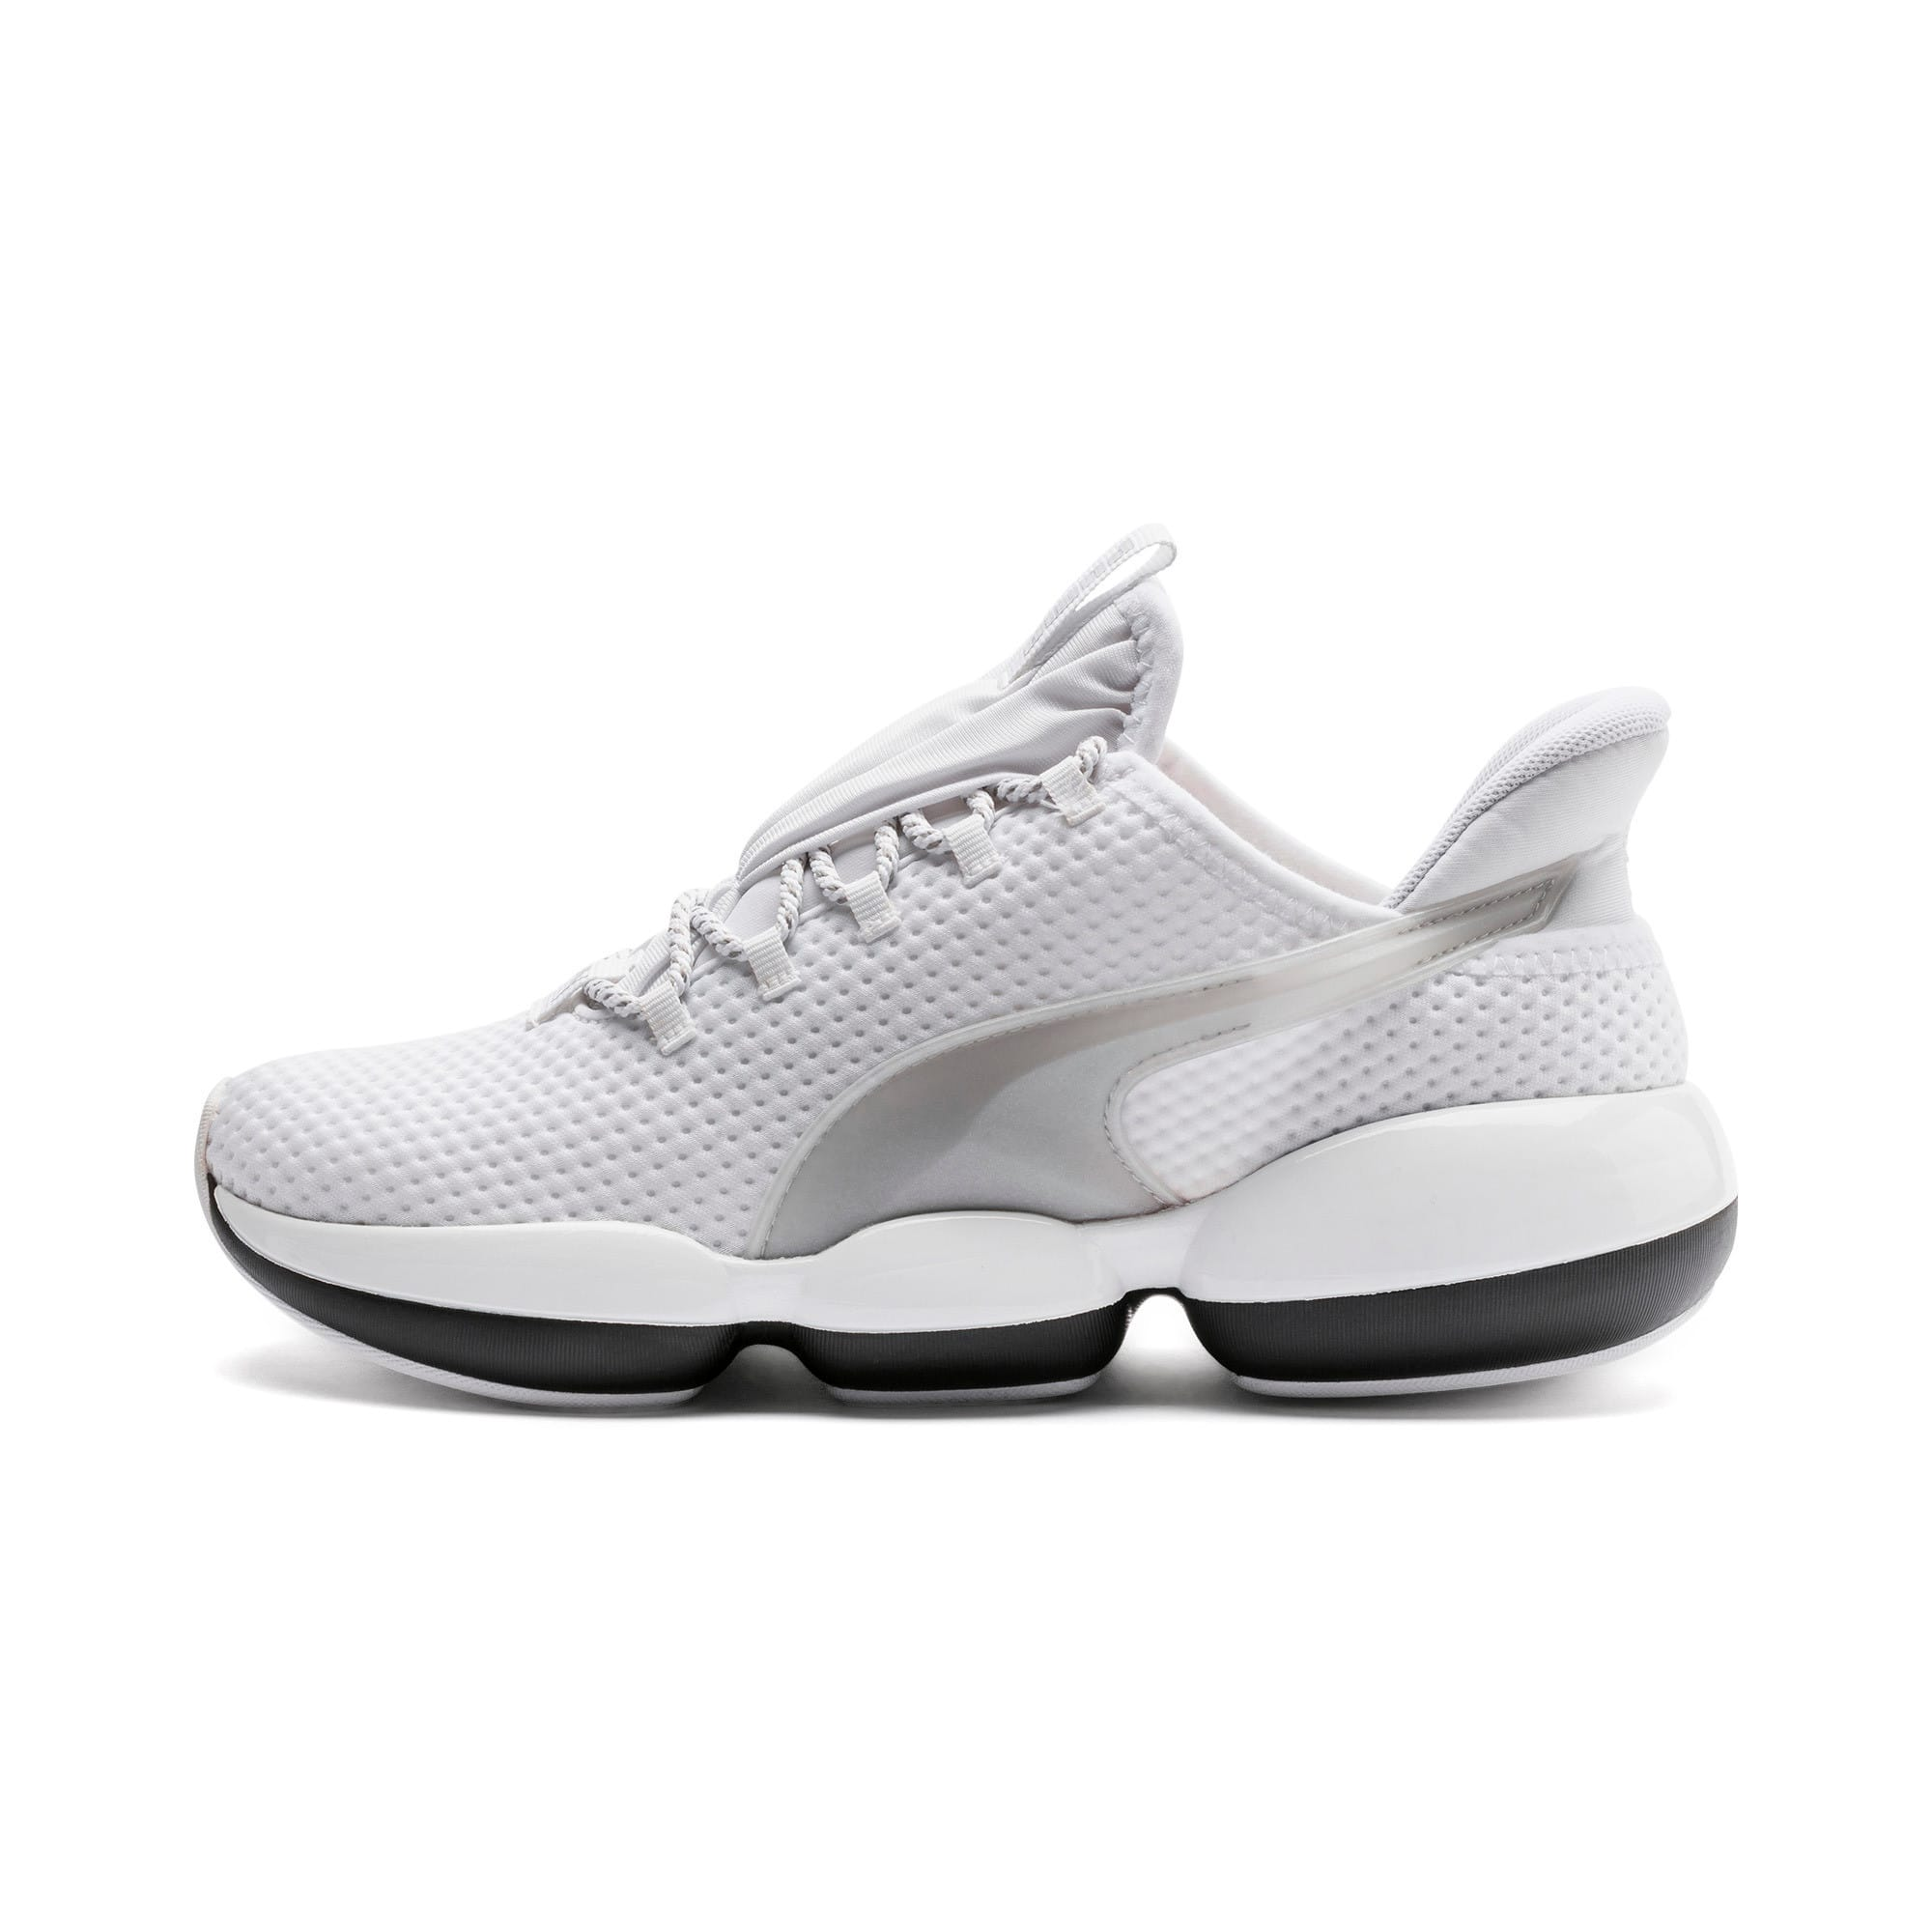 Thumbnail 1 of Mode XT Women's Training Trainers, Puma White-Puma Black, medium